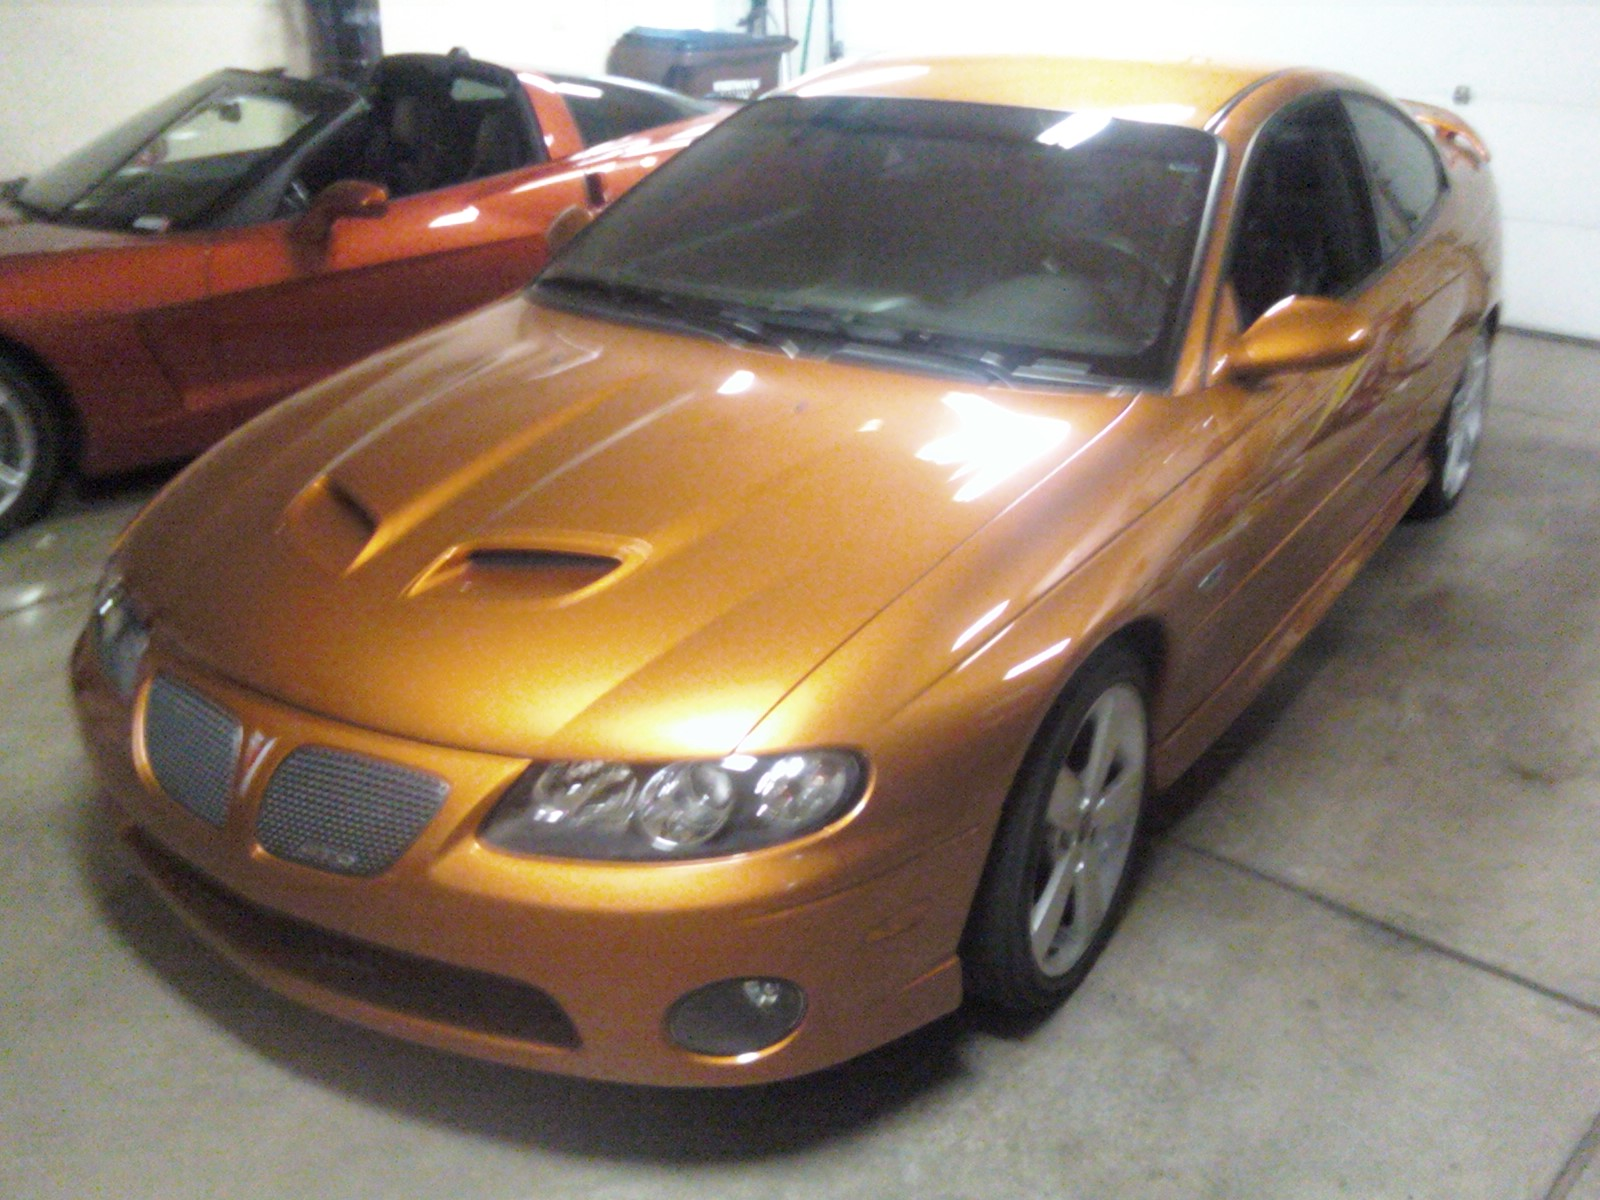 2006 Brazen Orange GTO For Sale-0919081305a.jpg